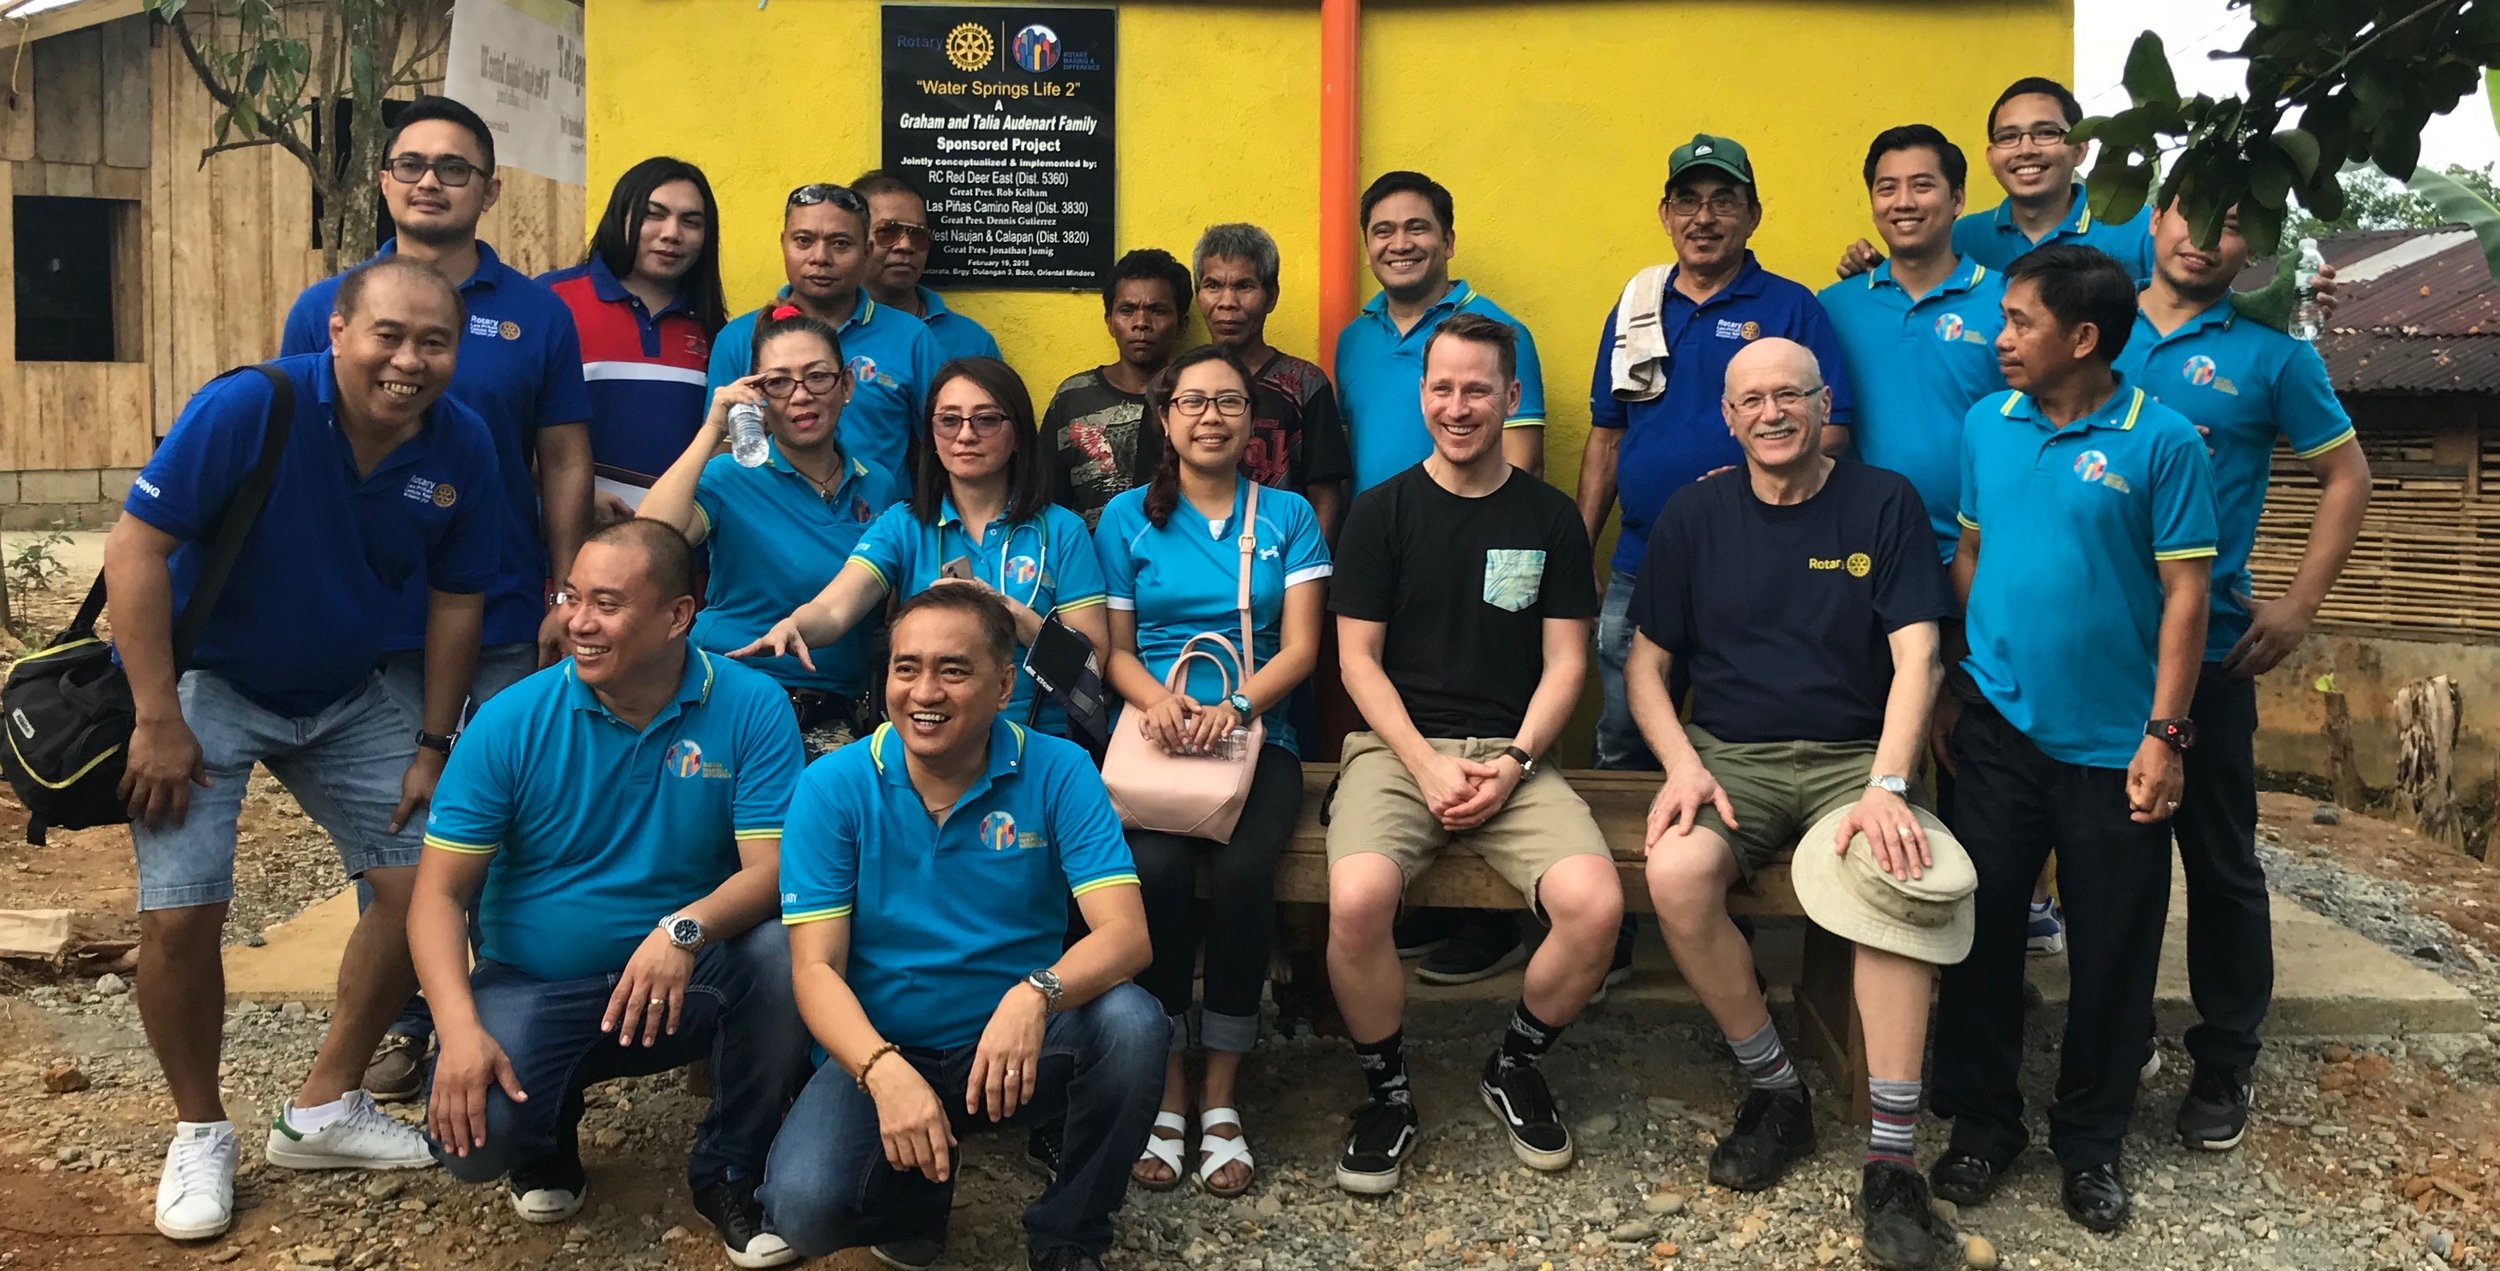 The great people of rotary that helped organize and execute this amazing project.